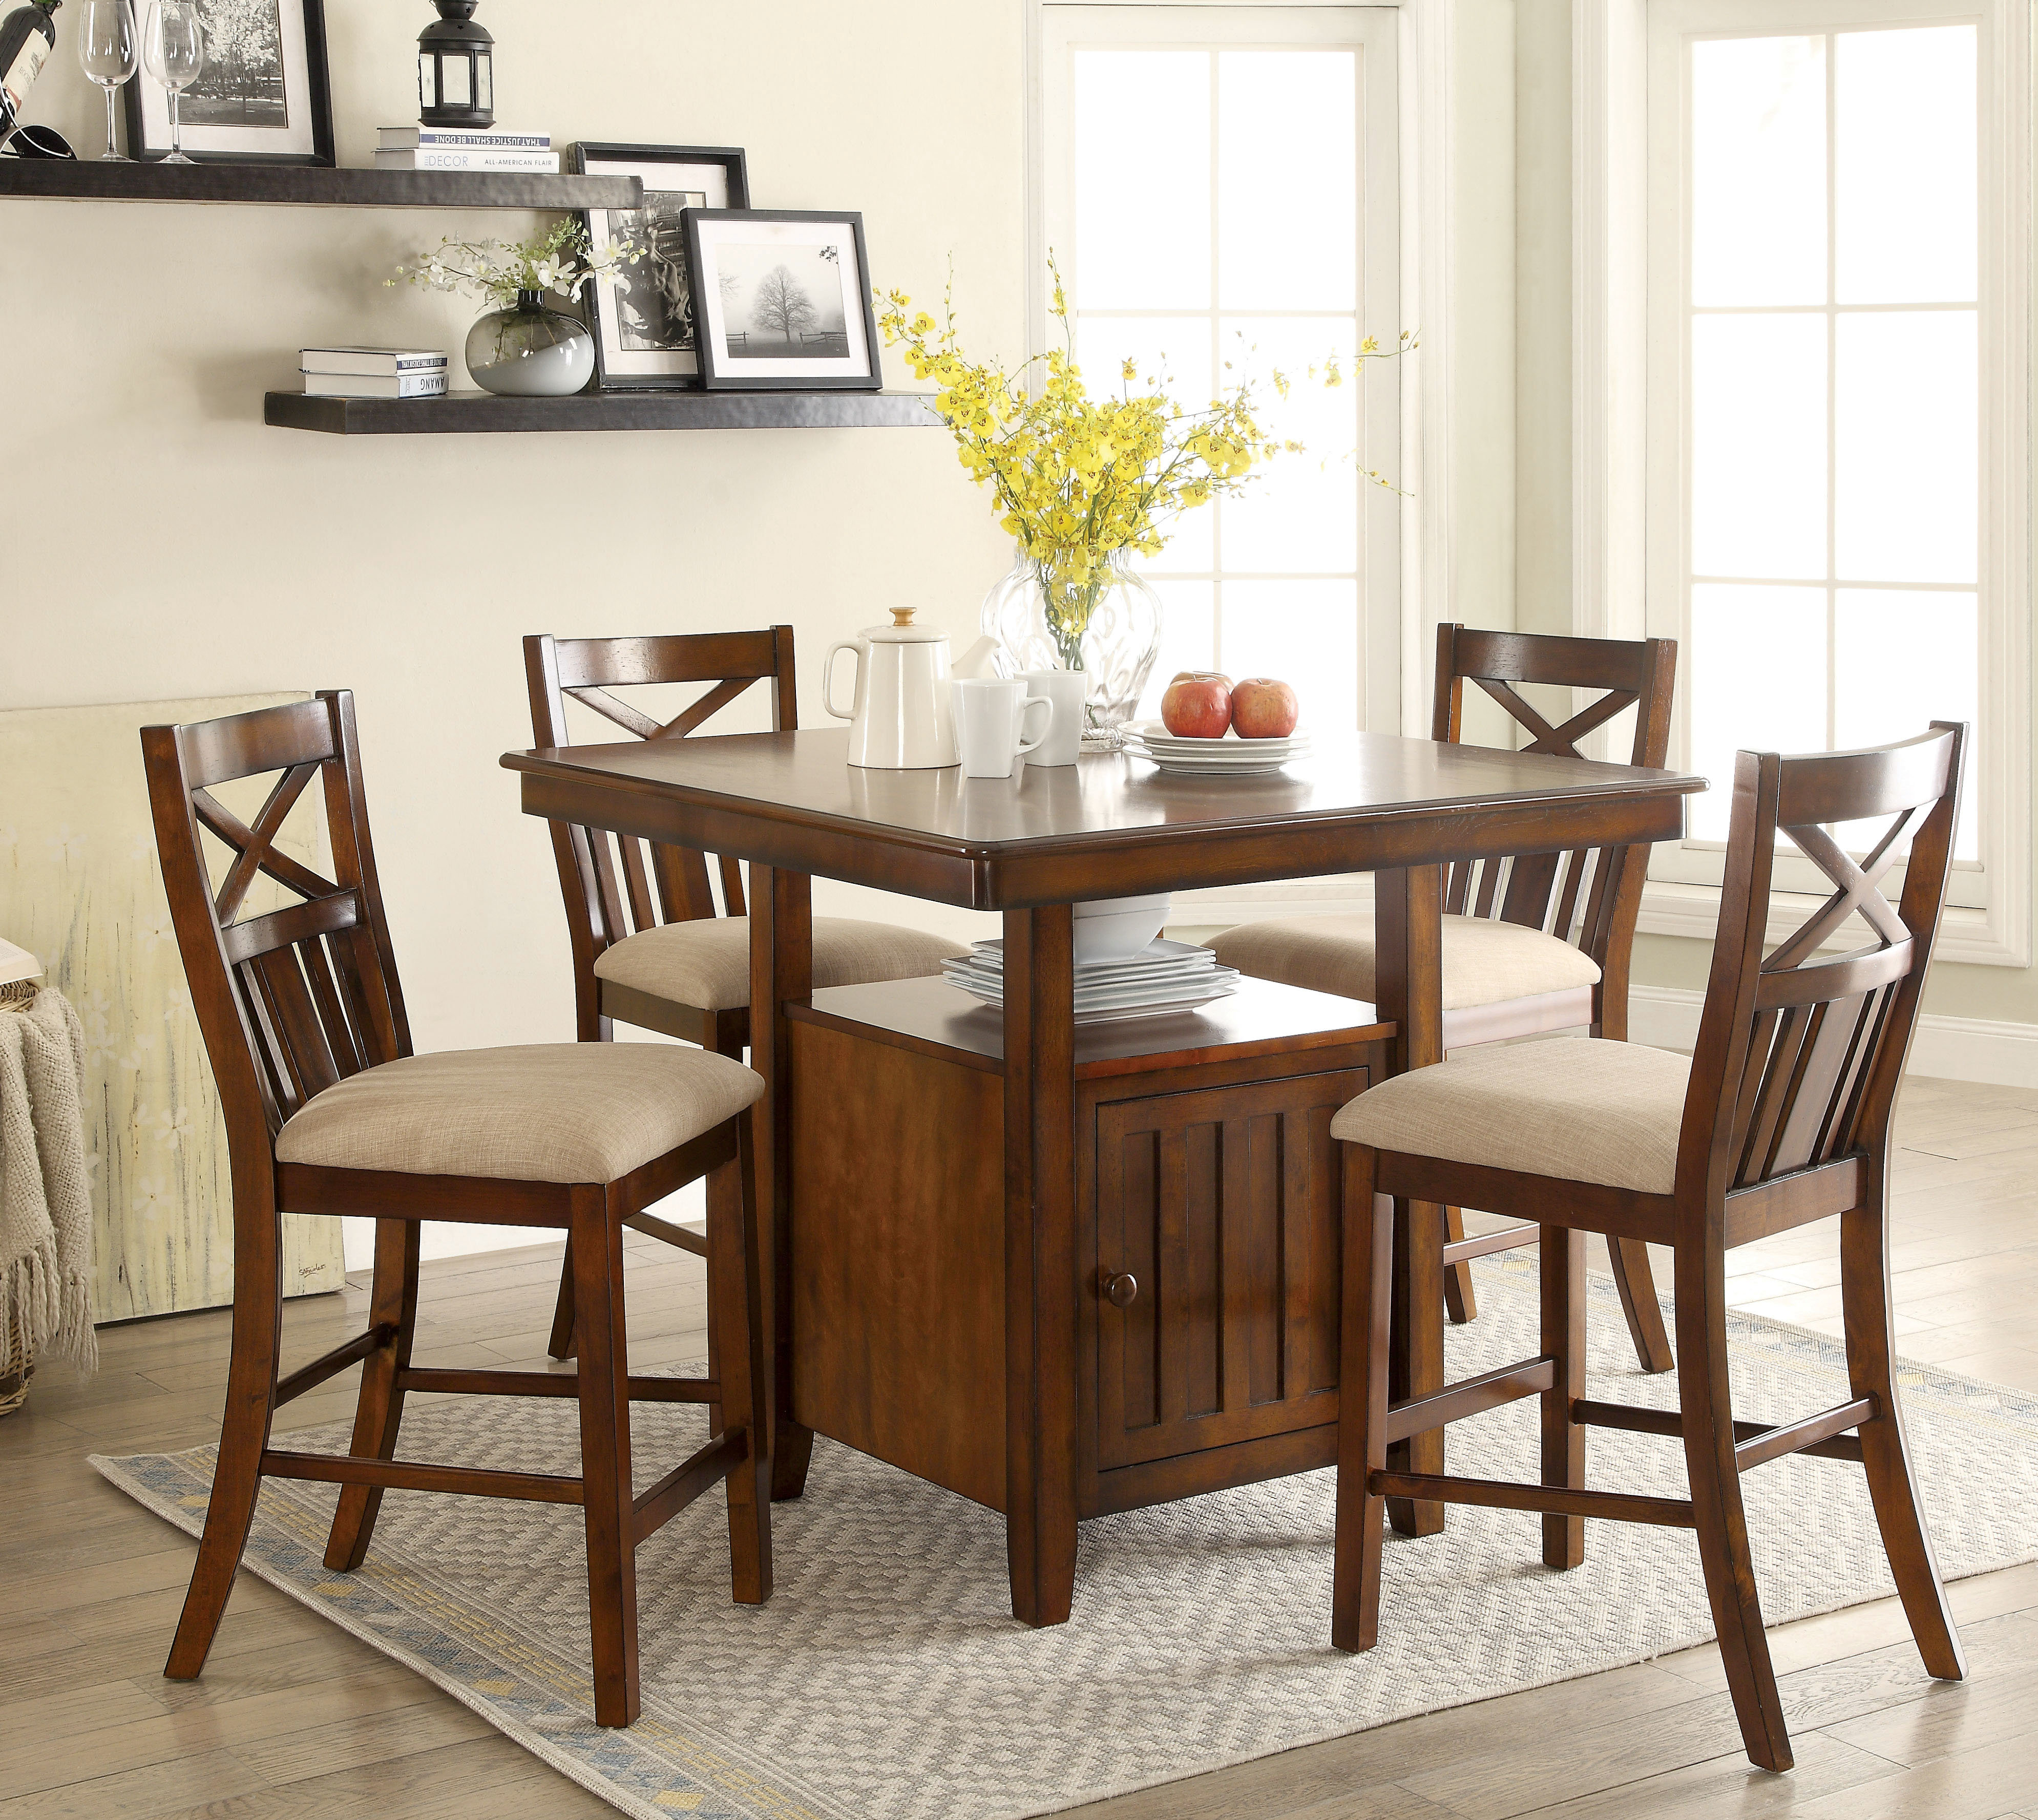 Bryson 5 Piece Dining Set In Newest Bryson 5 Piece Dining Sets (Image 6 of 20)